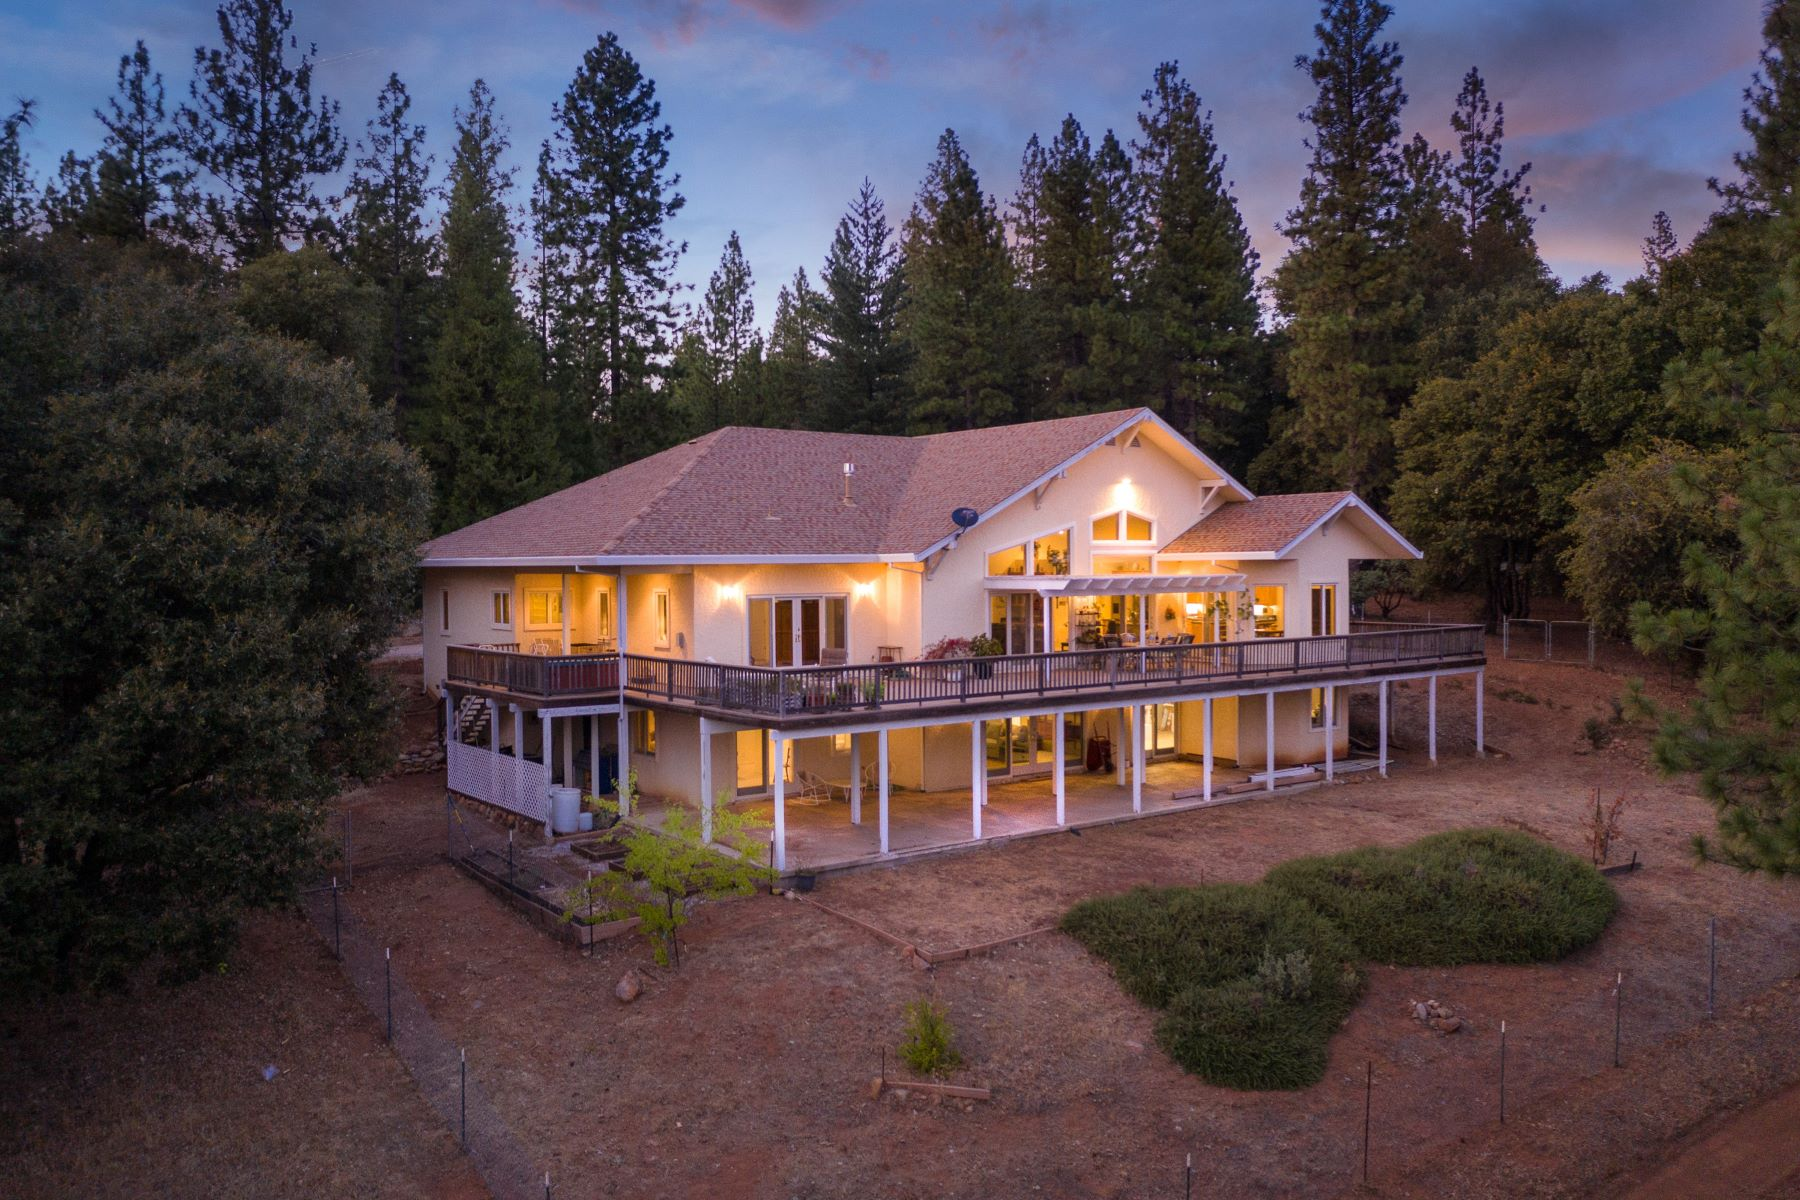 Single Family Homes for Sale at Custom Built Home Boasting Over 5,000 sq ft and 30+ Acres 24200 Golden Ridge Drive Volcano, California 95689 United States